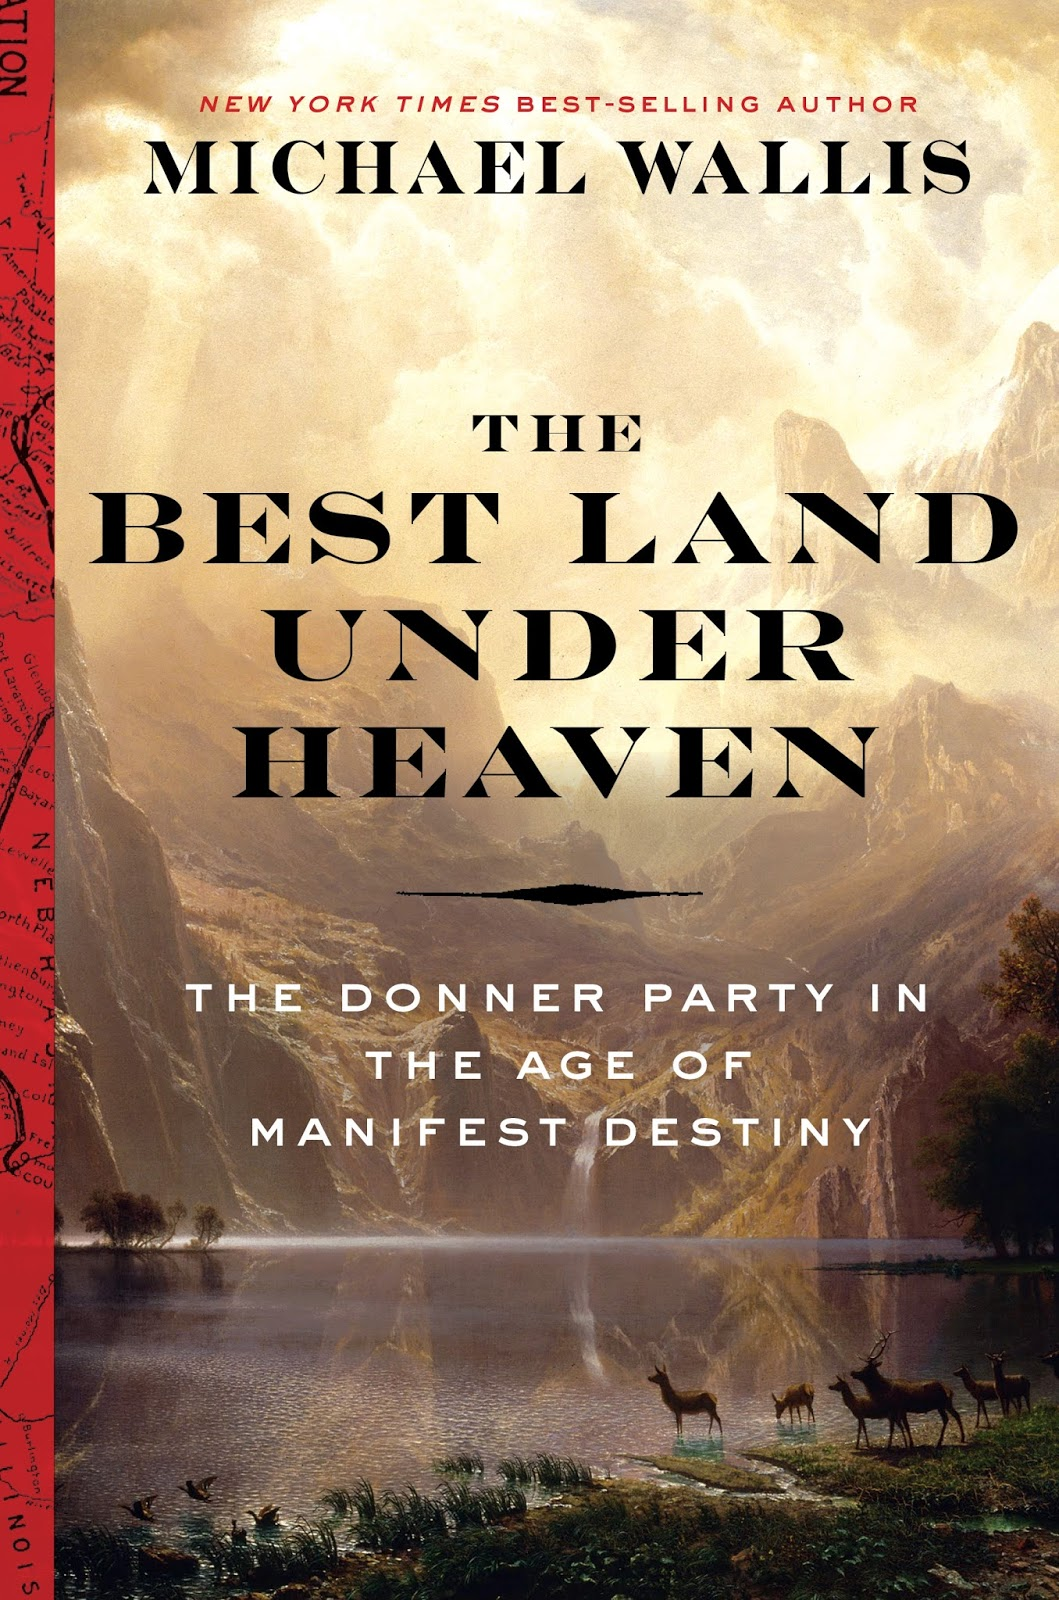 Few Incidents In Western History Have Had Such A Hold On The American  Imagination As The Story Of The Doomed Donner Party In Michael Wallis's  Expansive And